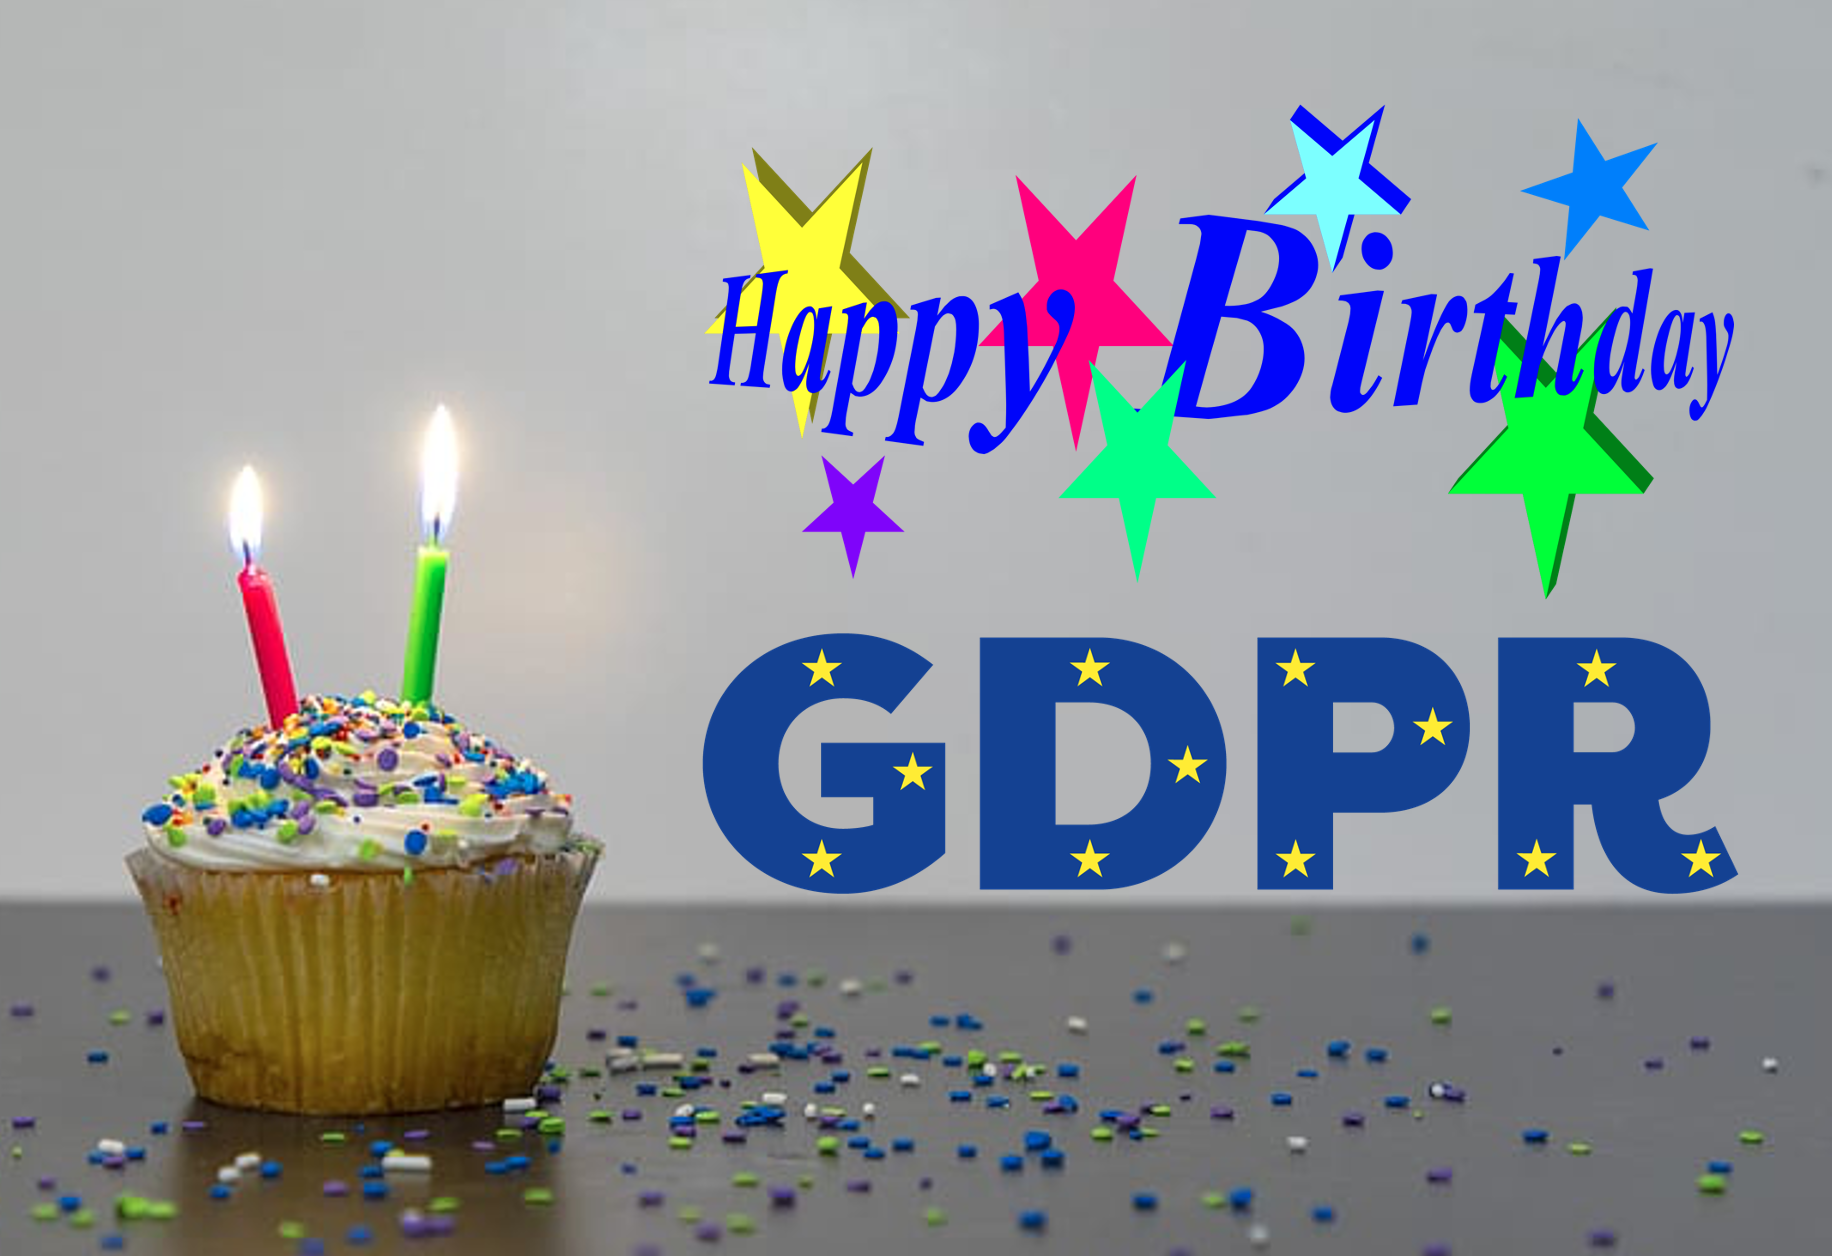 Happy birthday GDPR